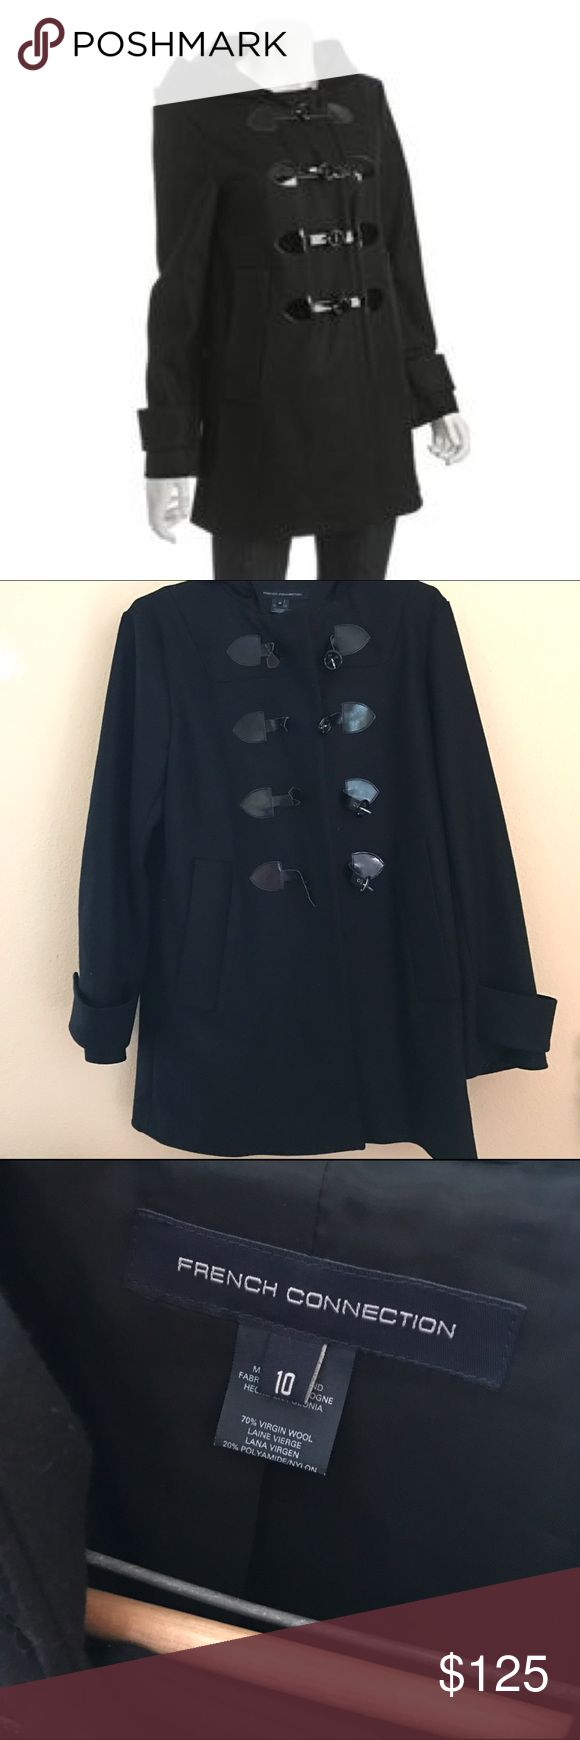 """French Connection Duffle Wool Cashmere blend coat Excellent condition. Size 10. Duffle coat with hood! 70% wool 20% nylon 10% Cashmere. Armpit to armpit 20.5"""" Armpit down 22"""" Shoulders down 32.5"""". French Connection Jackets & Coats"""